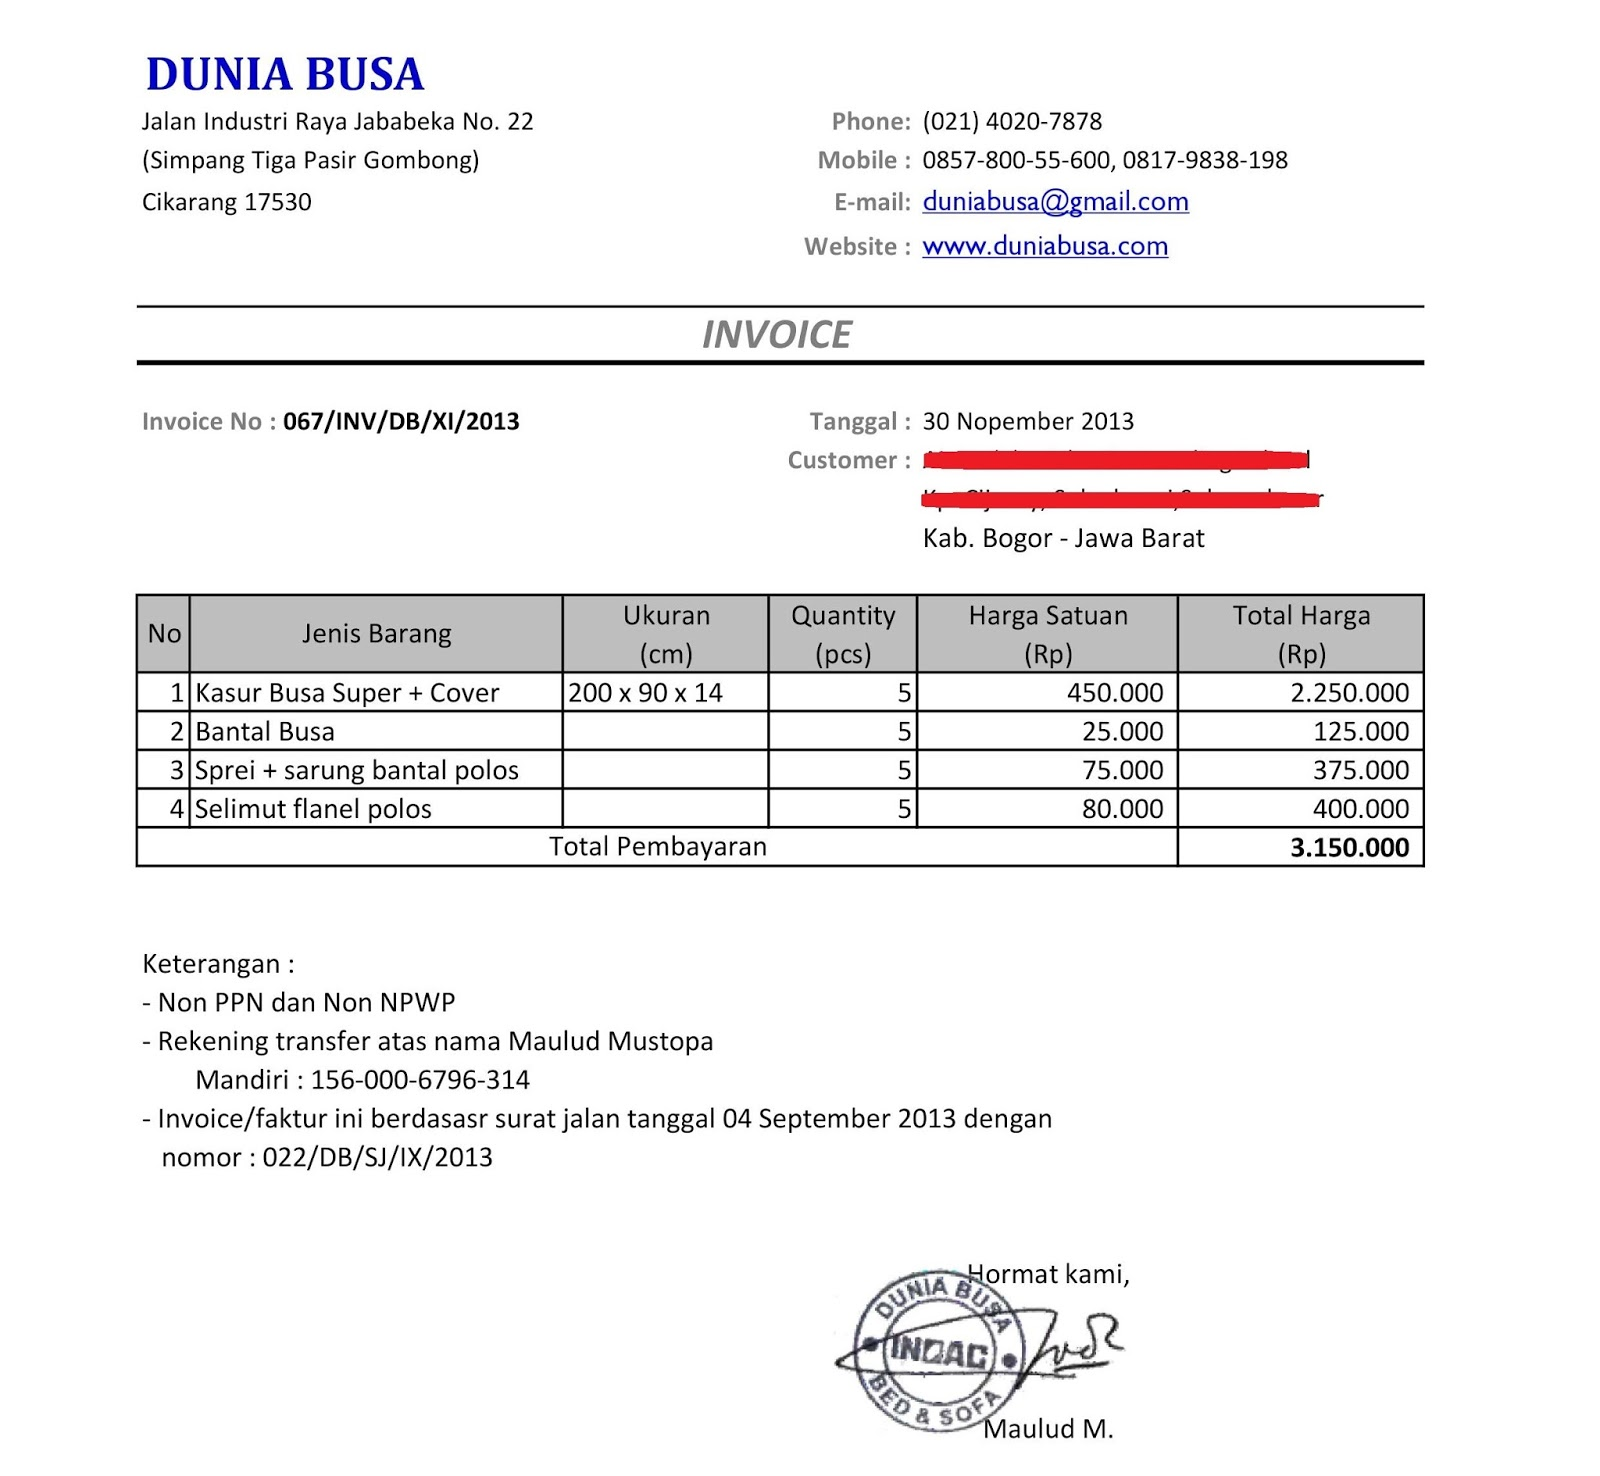 Usdgus  Unique Free Invoice Online  Create Invoice Online  Invoice Template  With Interesting Contoh Format Invoice Atau Surat Tagihan  Brankas Arsip  Free Invoice Online With Lovely Hsbc Invoice Finance Login Also How To Track Invoices In Addition Php Invoice System And Access Invoice As Well As Blank Proforma Invoice Template Additionally Credit Invoice Template From Sklepco With Usdgus  Interesting Free Invoice Online  Create Invoice Online  Invoice Template  With Lovely Contoh Format Invoice Atau Surat Tagihan  Brankas Arsip  Free Invoice Online And Unique Hsbc Invoice Finance Login Also How To Track Invoices In Addition Php Invoice System From Sklepco